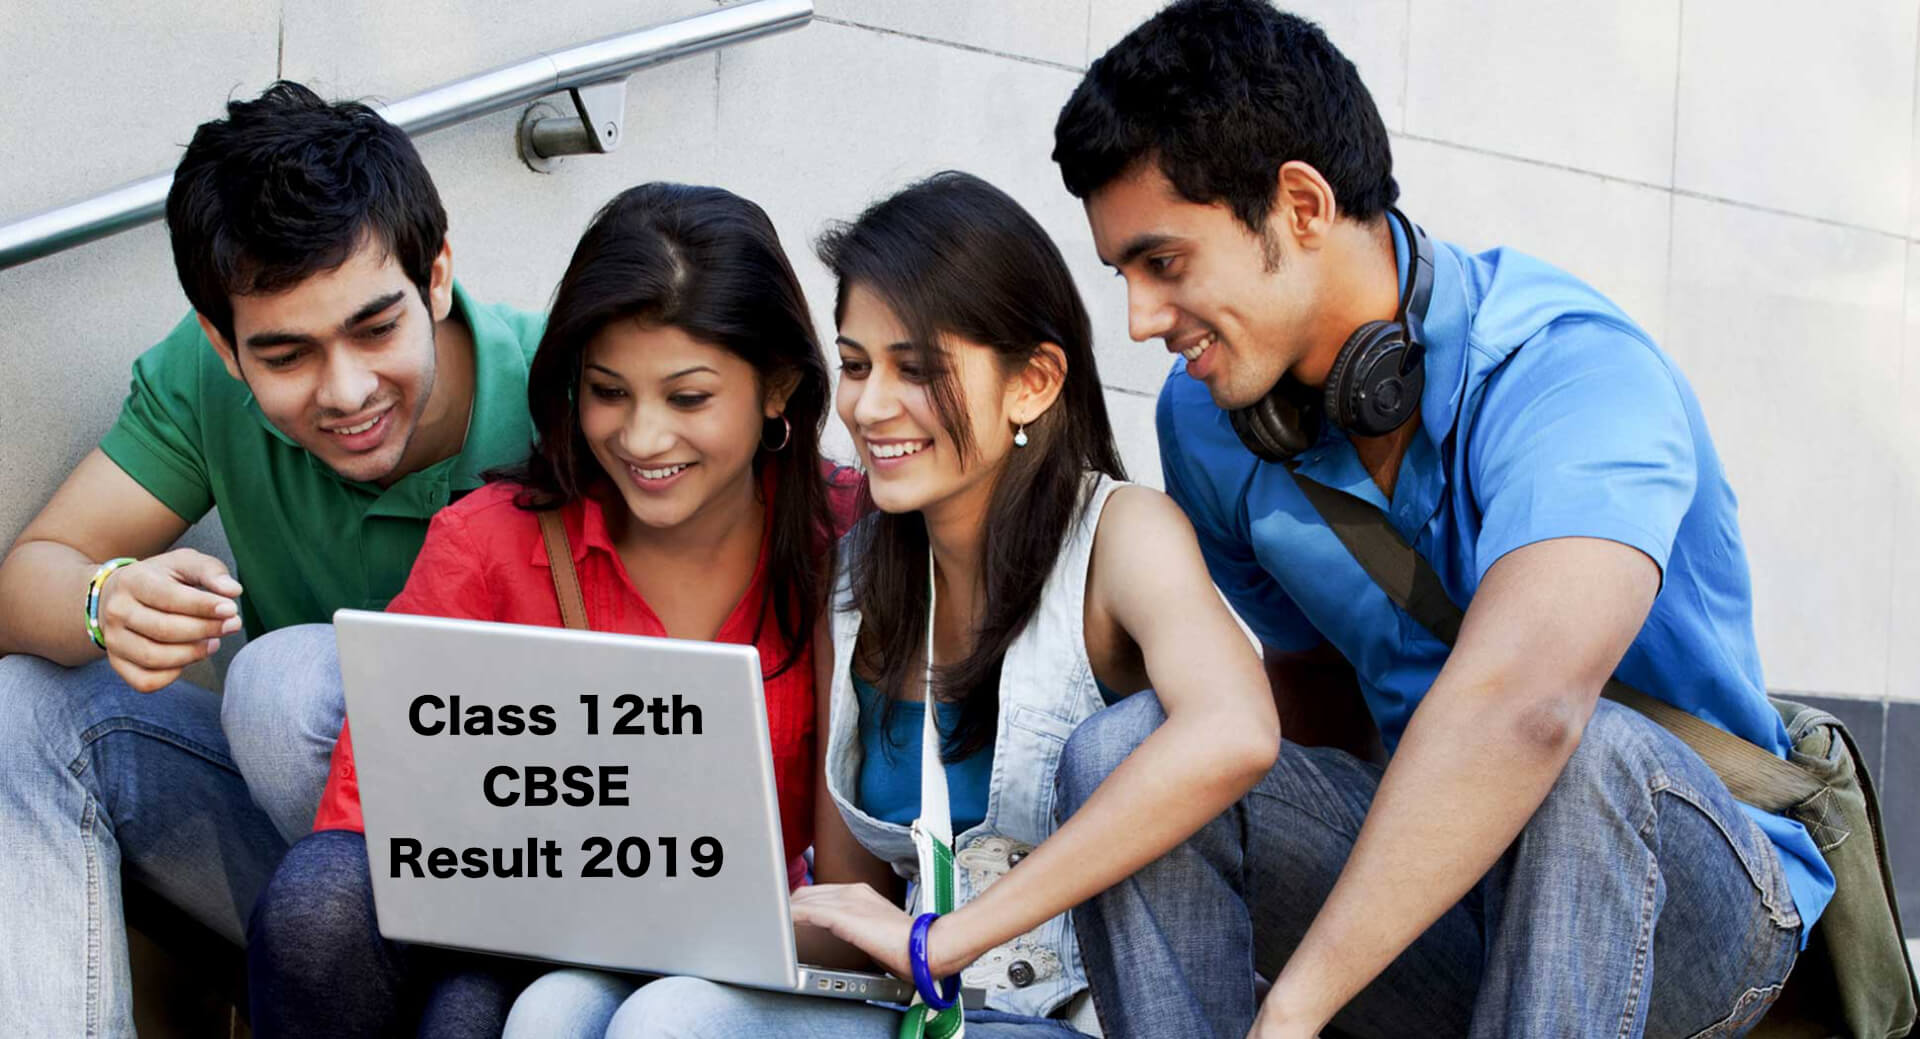 CBSE Board Class 12 Result 2019 - Girls Outshine Boys Again - Check Your Result Here